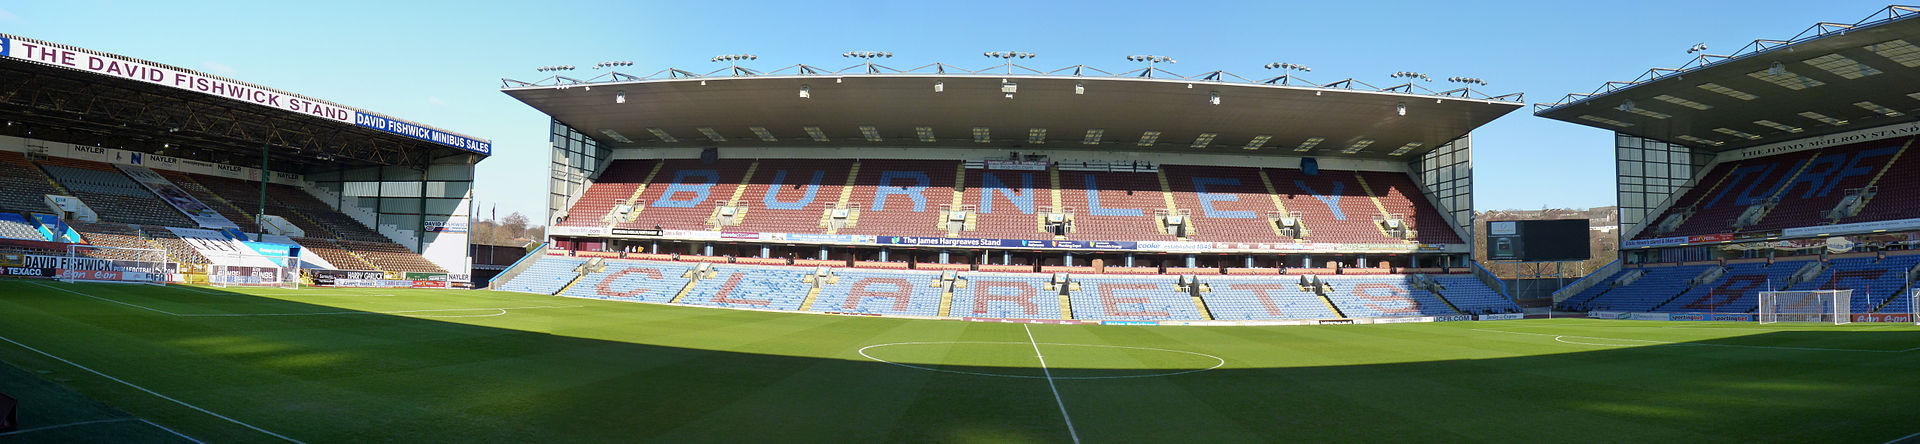 By Adam Haworth - Turf Moor, CC BY 2.0, https://commons.wikimedia.org/w/index.php?curid=13508444